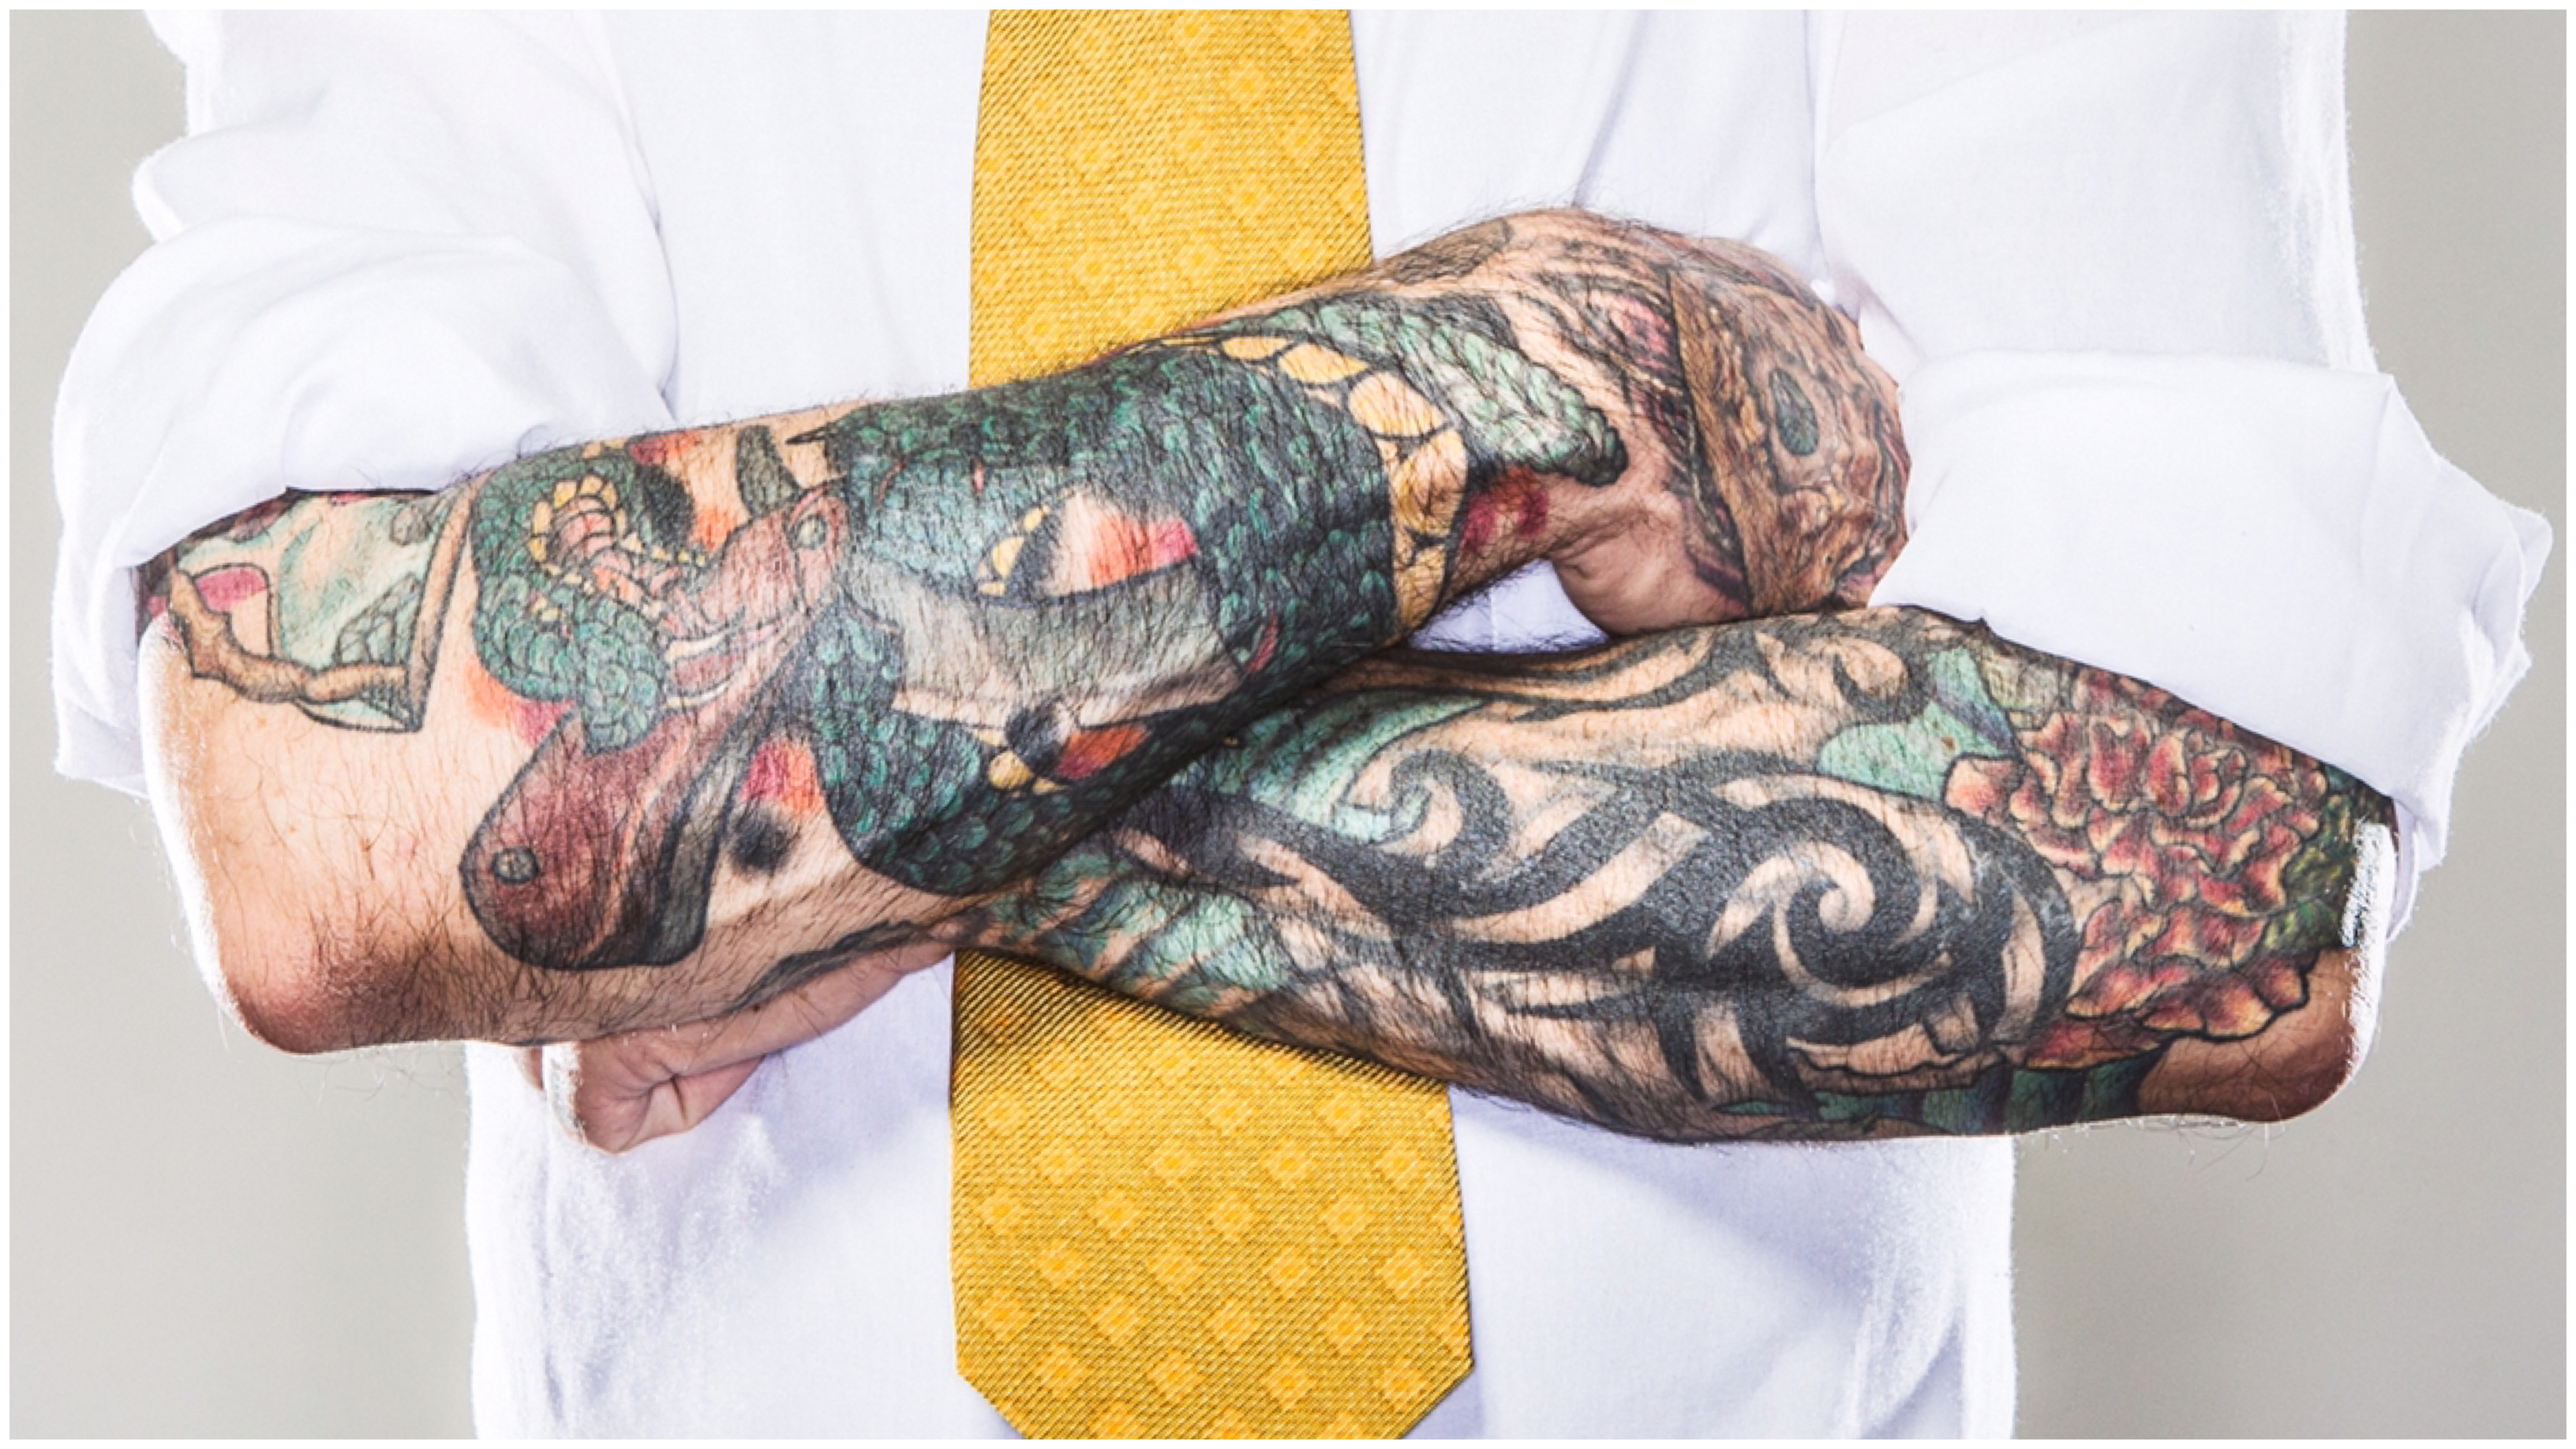 Tattooed employees more reckless and impulsive, study finds